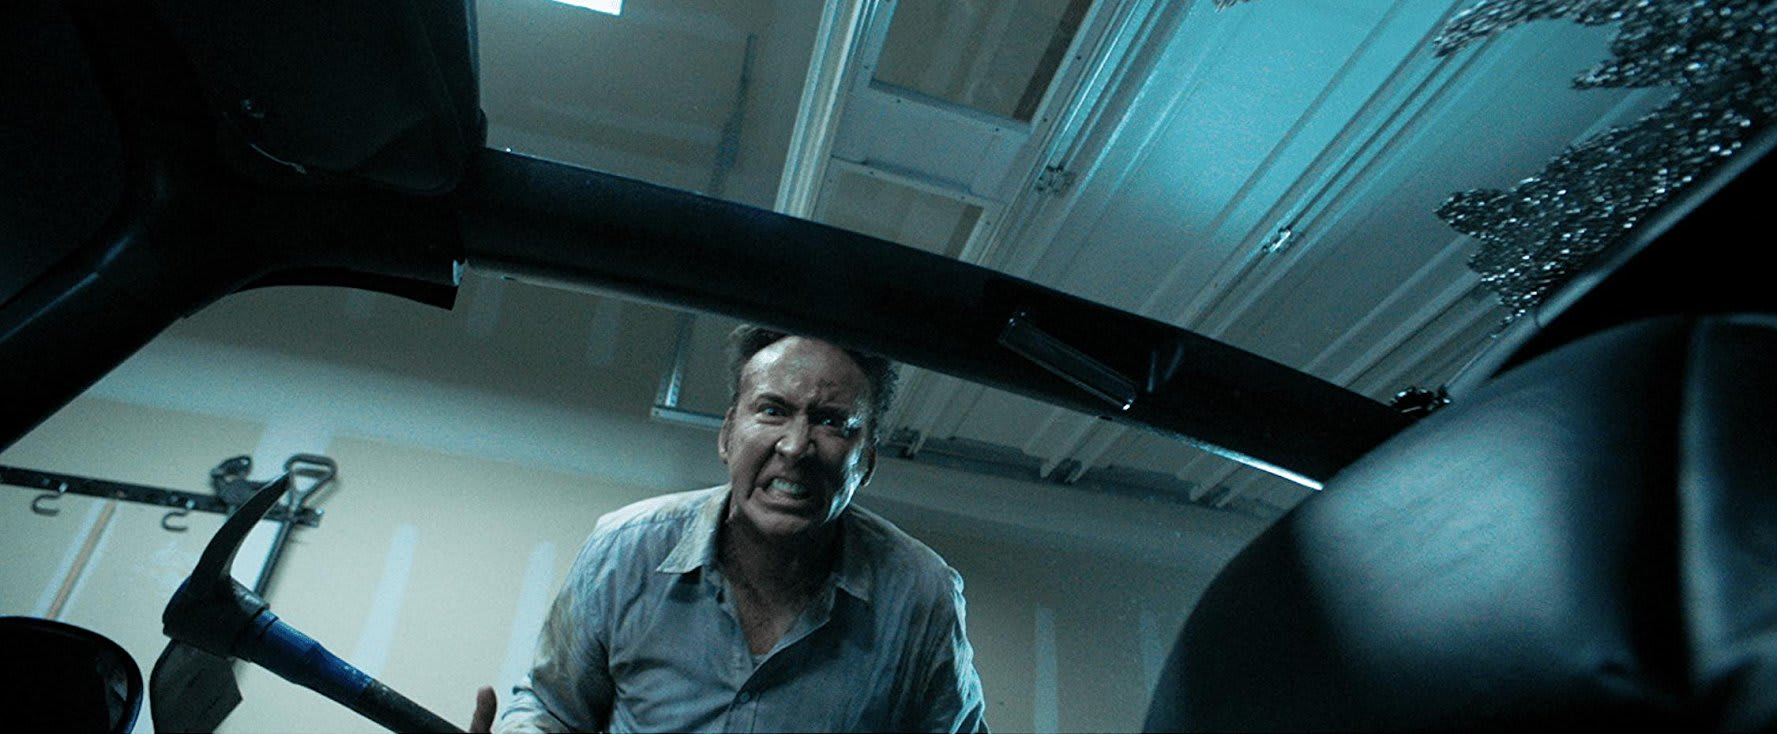 Mom and Dad: The Insanity of the Purge and an Unhinged Nicolas Cage